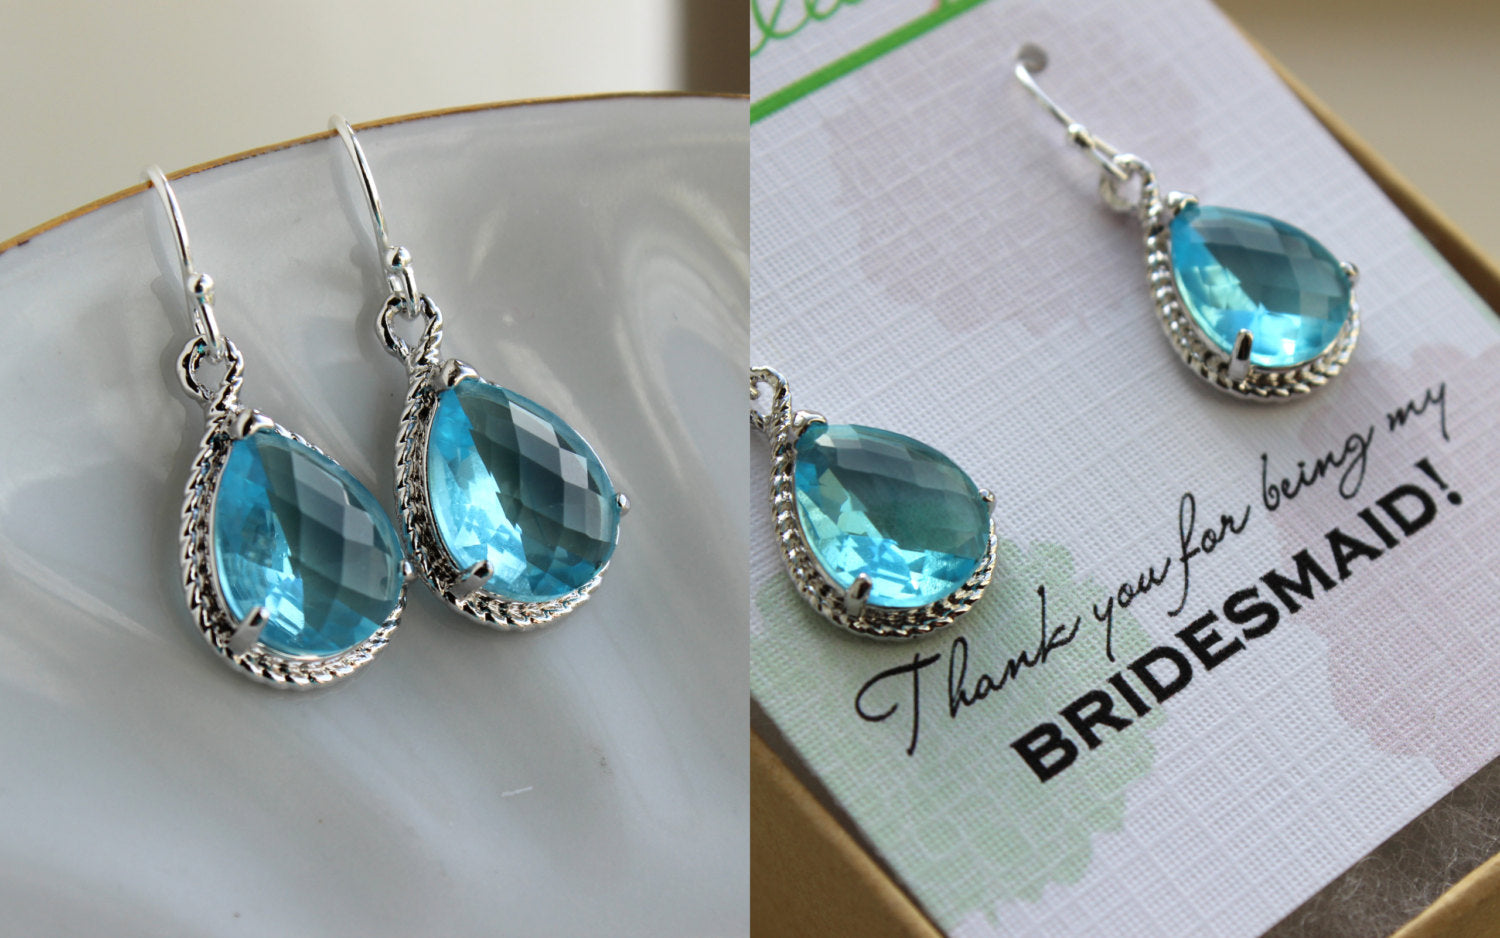 Silver Aquamarine Earrings Wedding Jewelry - Blue Topaz Bridesmaid Earrings Bridesmaid Gift Blue Bridal Jewelry Personalized Thank You Note